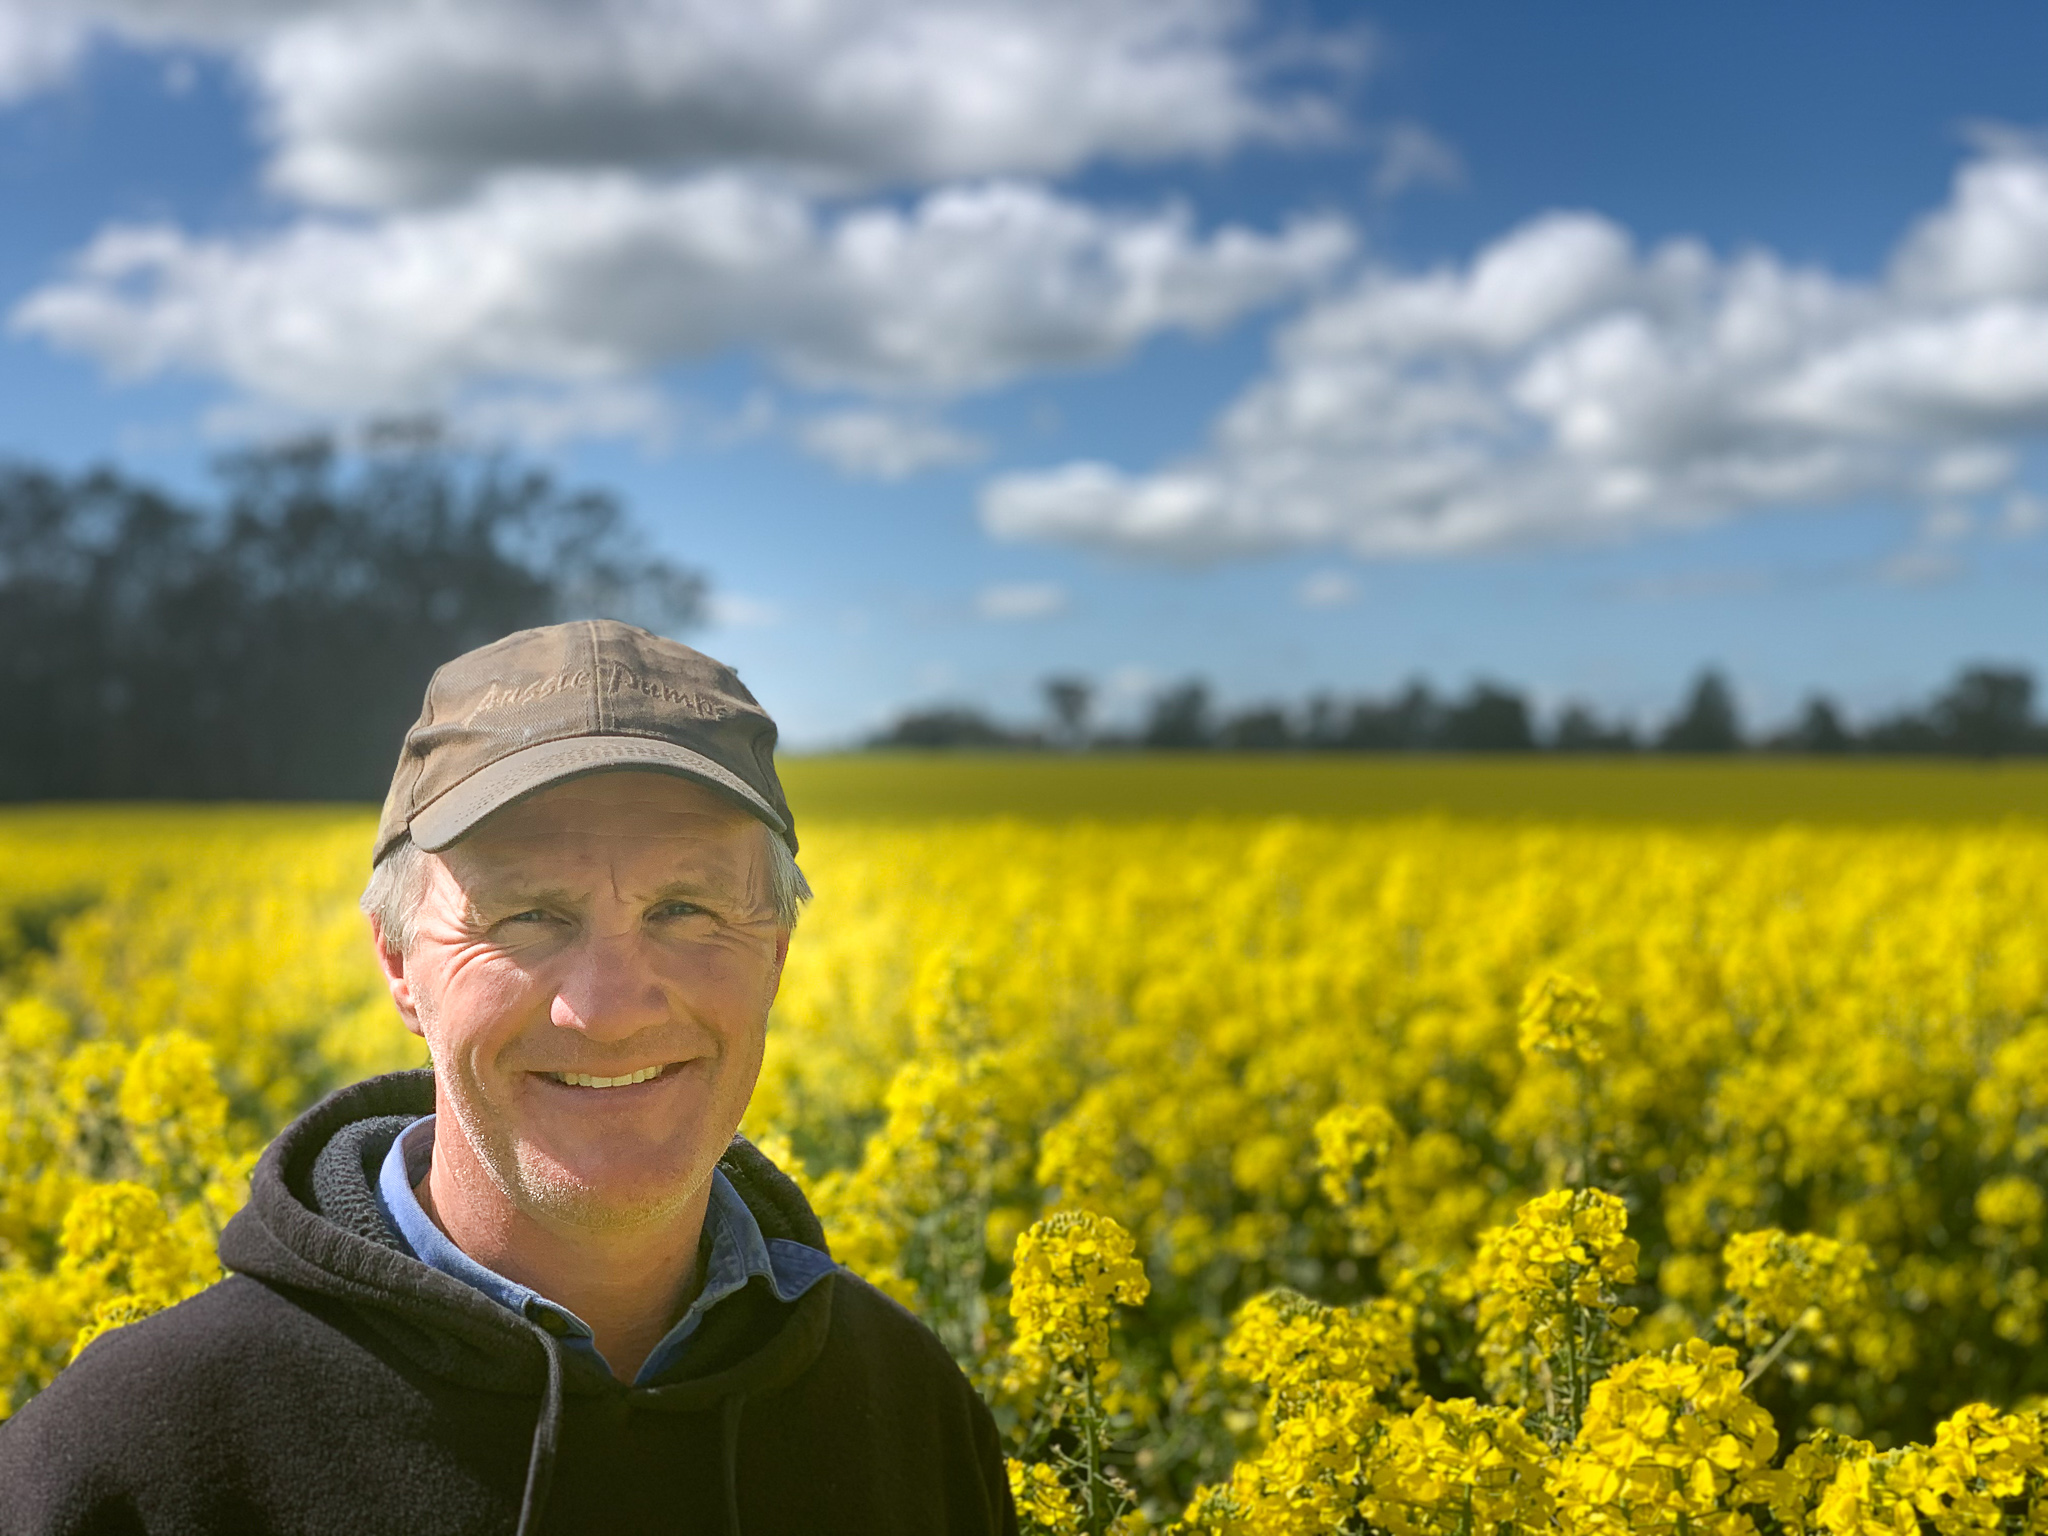 Innovative southern growers share their wins in controlling weeds